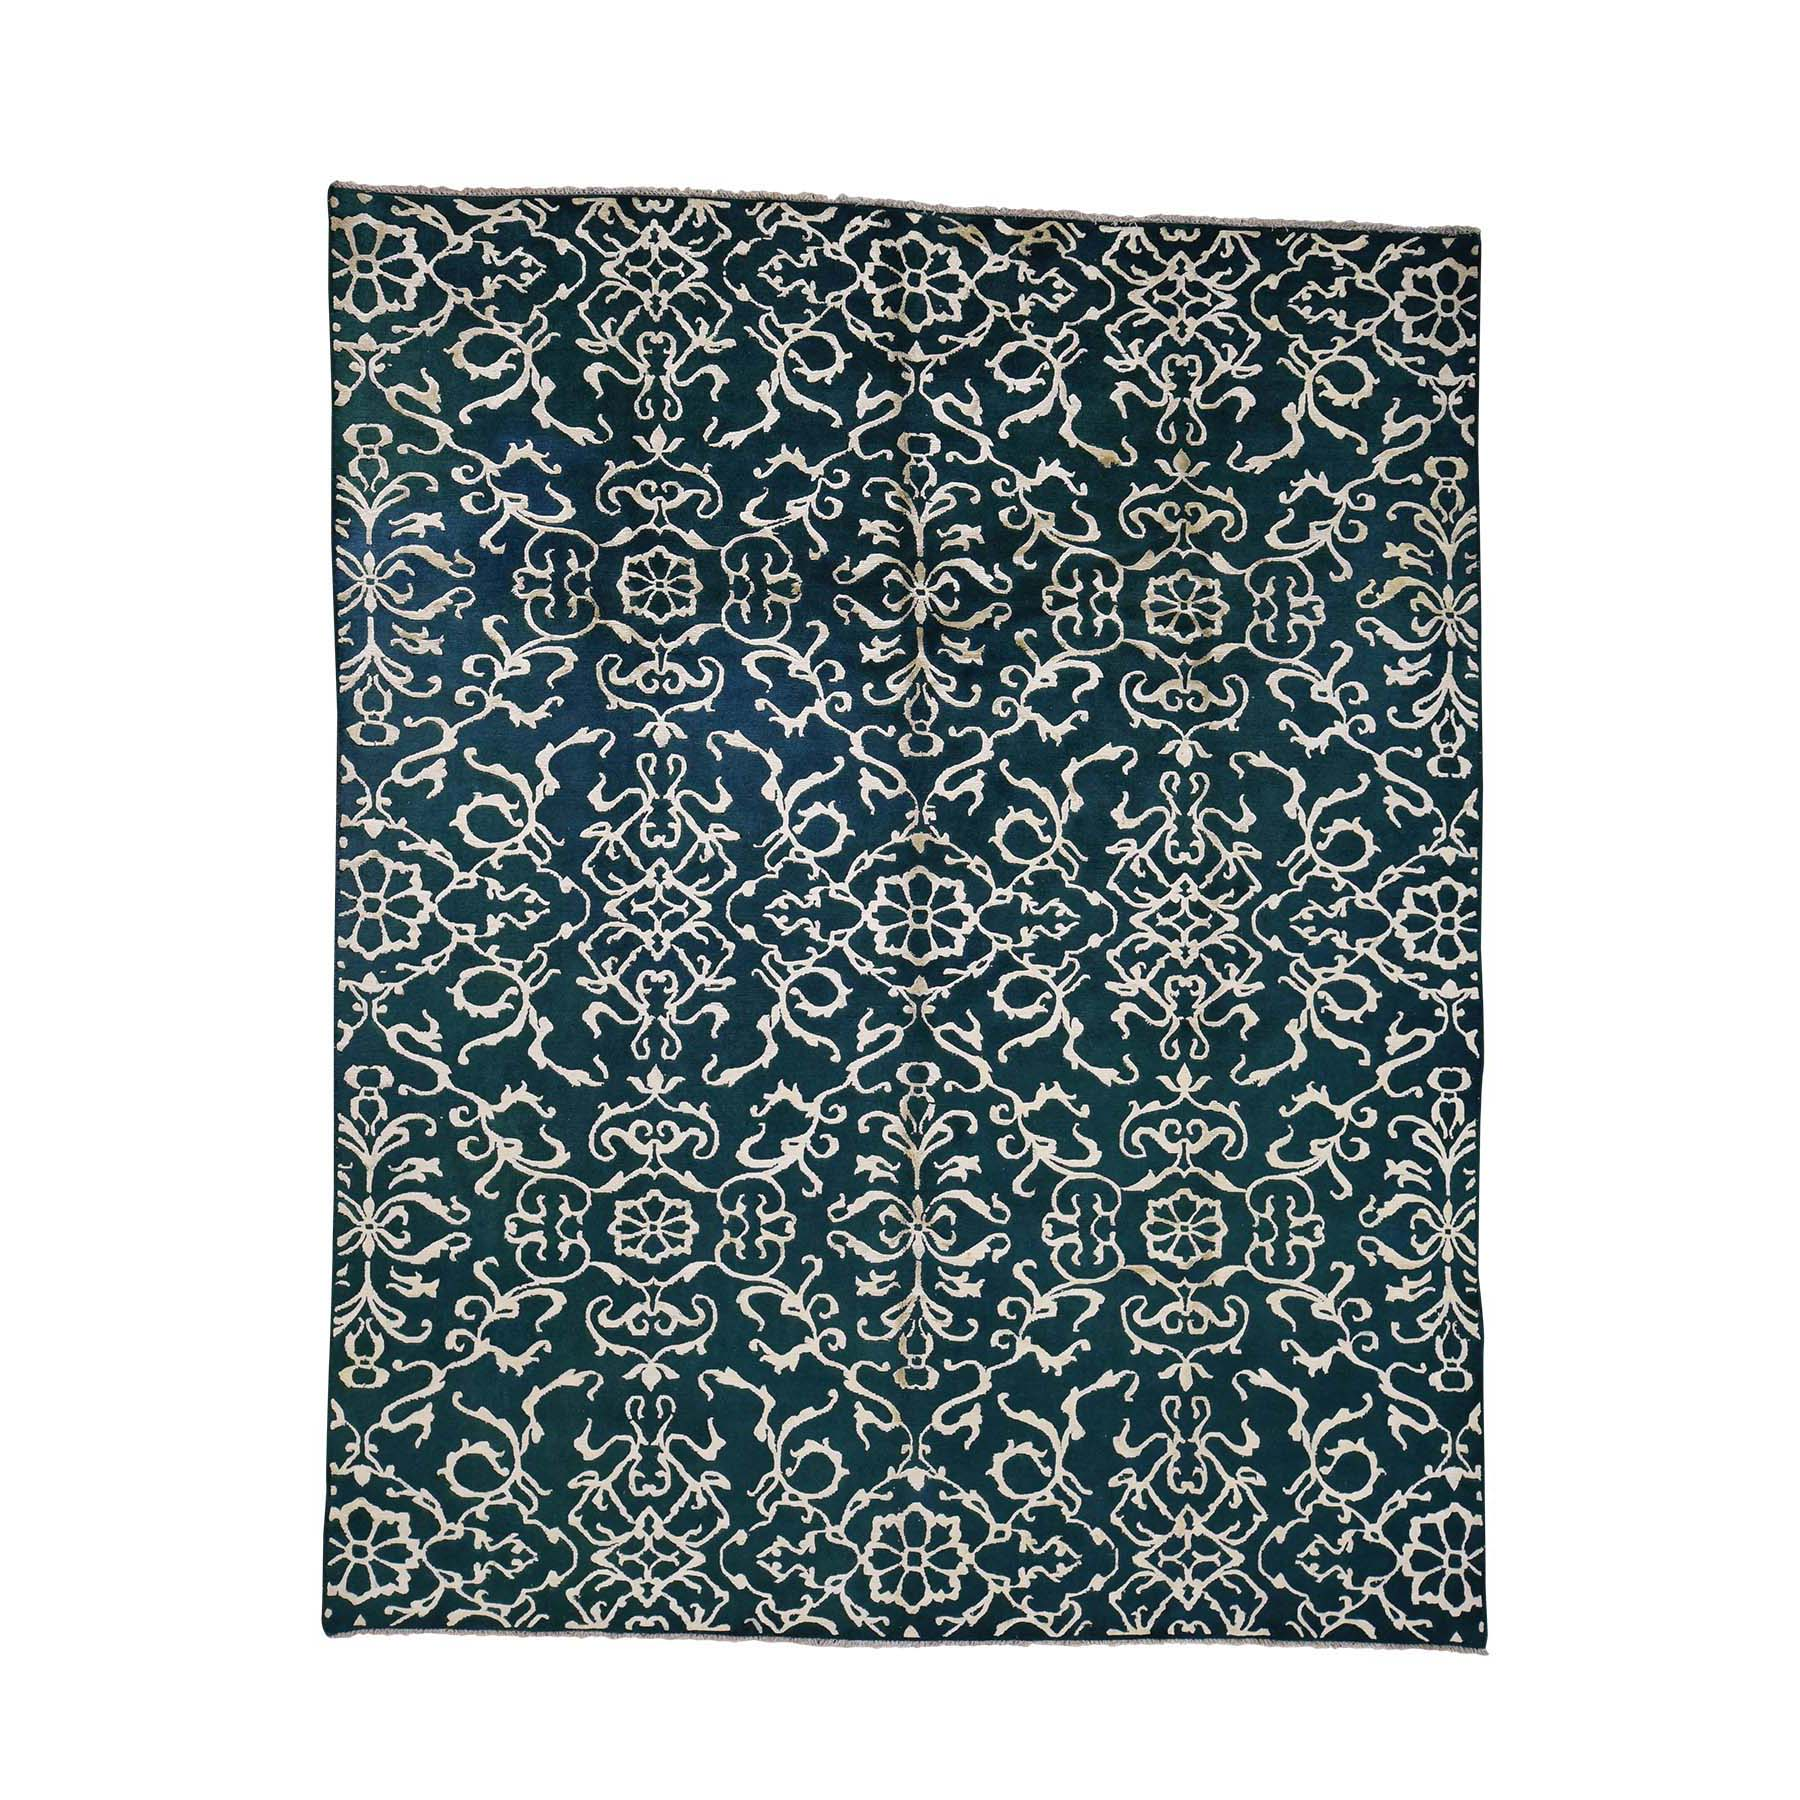 7'7''x9'4'' Wool and Silk Modern Nepali Hand Knotted Oriental Rug